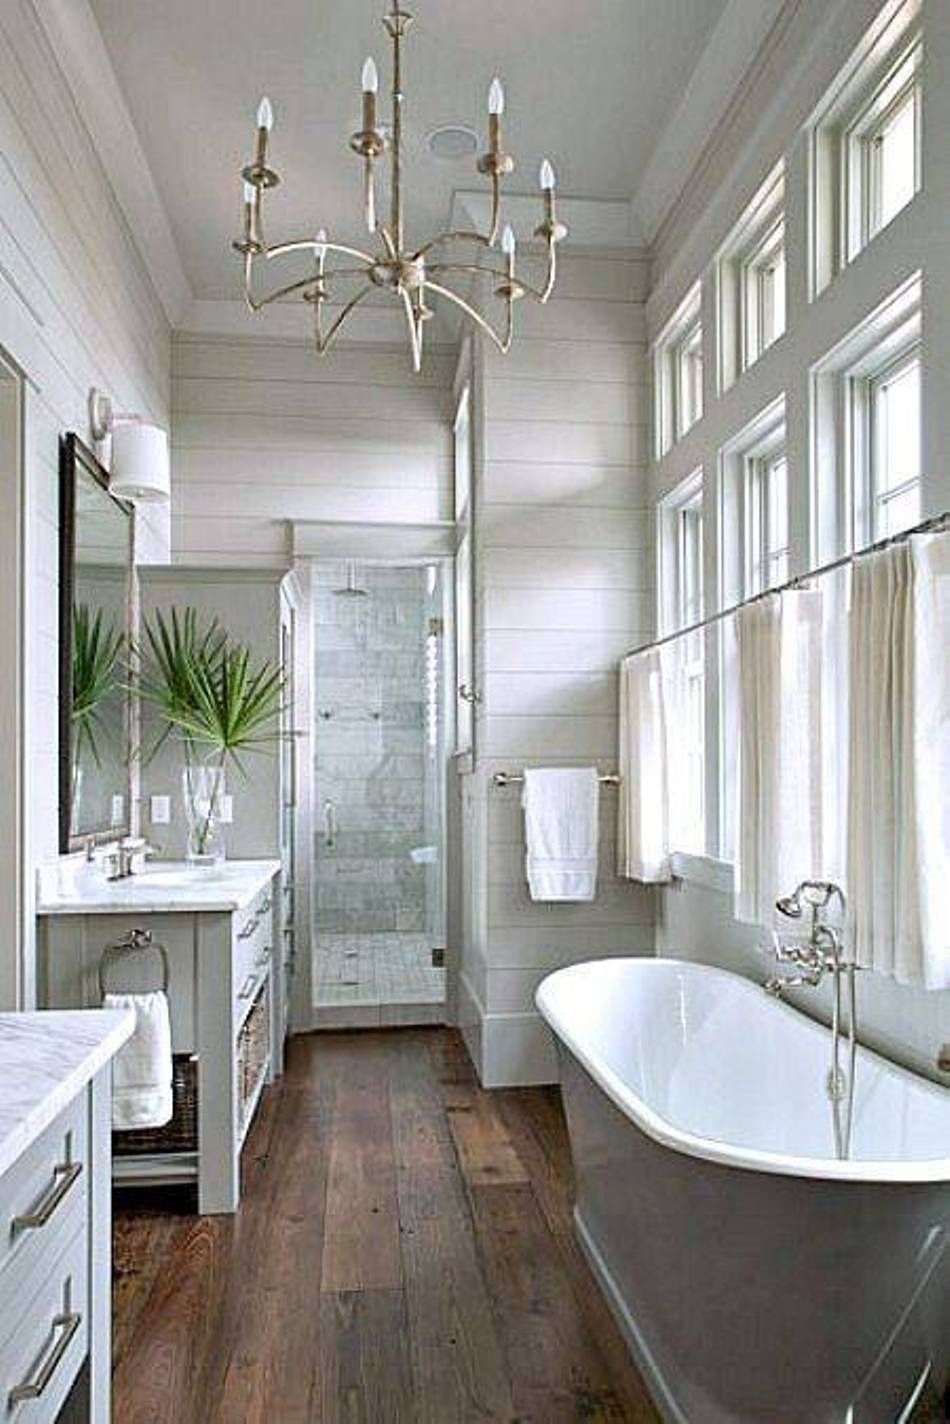 Cafe Curtains And Freestanding Tub New House Pinterest Small - Cafe curtains for bathroom for bathroom decor ideas